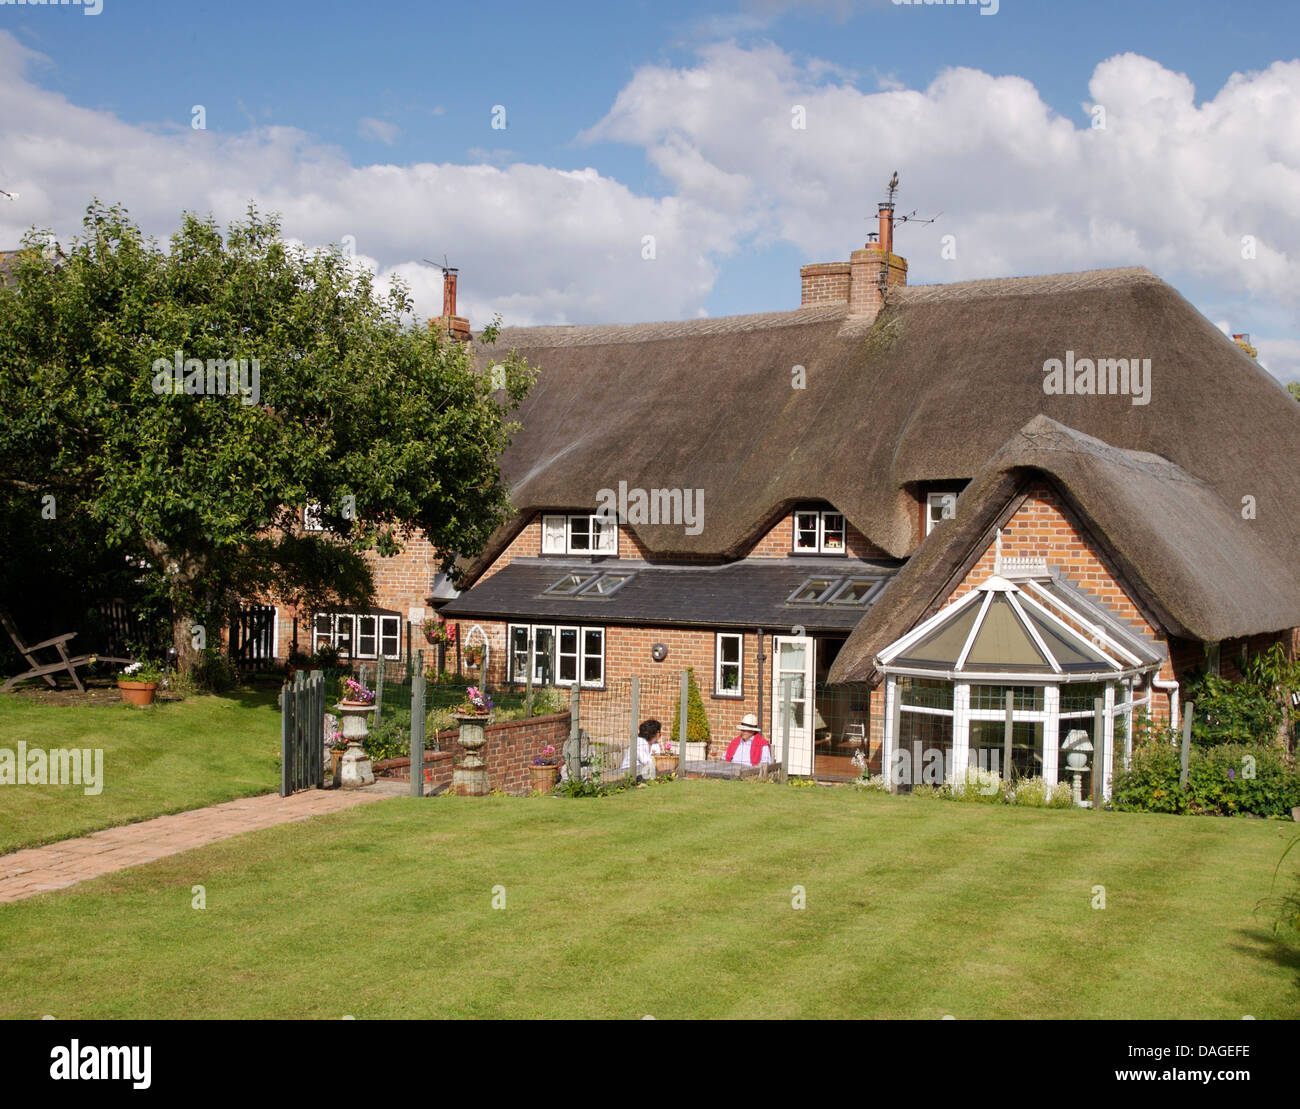 Lawn In Front Of Large Country Cottage With Thatched Roof